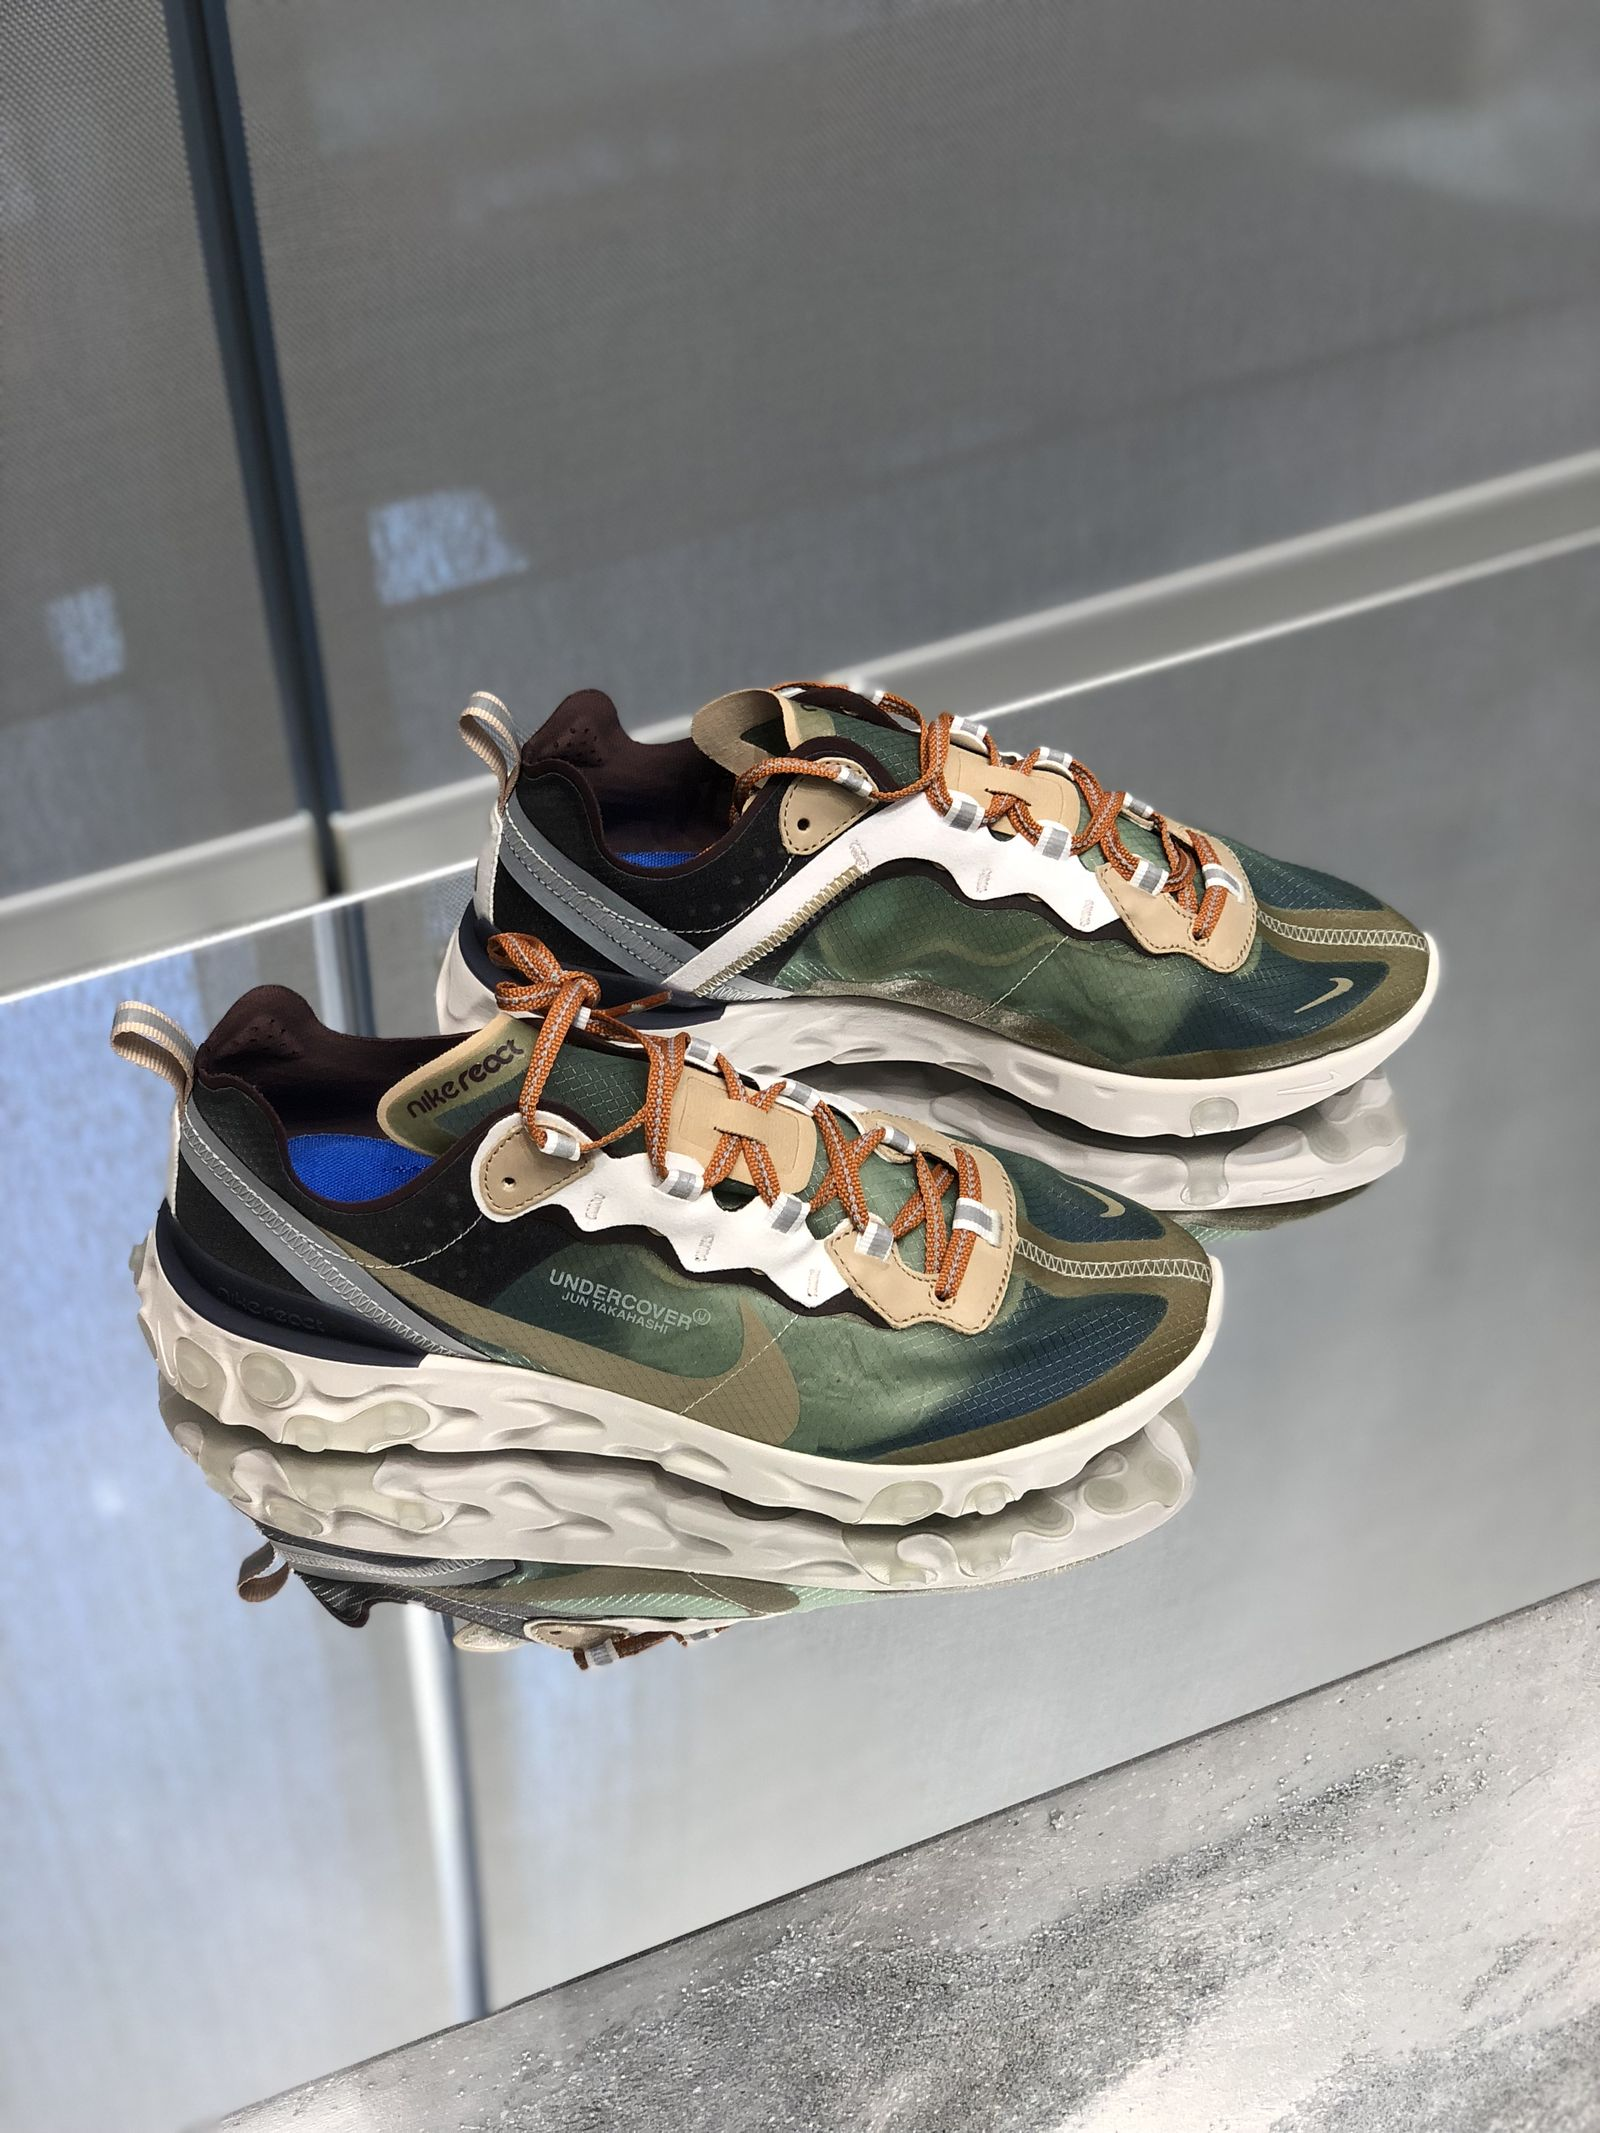 undercover nike react element 87 green mist